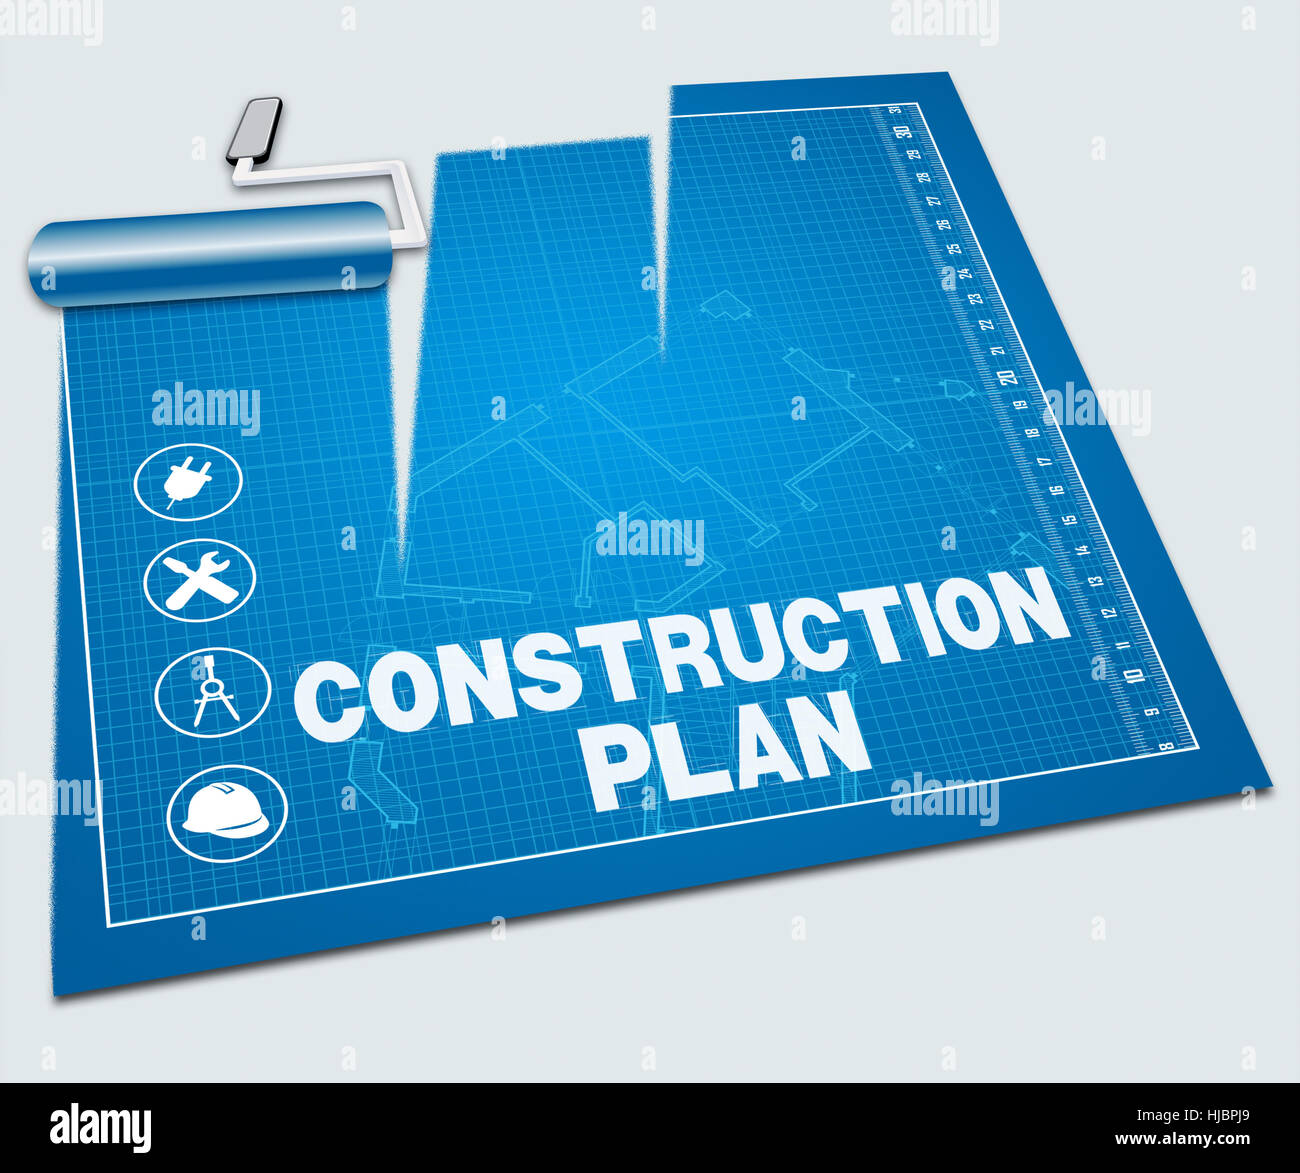 Construction plan paint roller shows building blueprint 3d stock construction plan paint roller shows building blueprint 3d illustration malvernweather Image collections